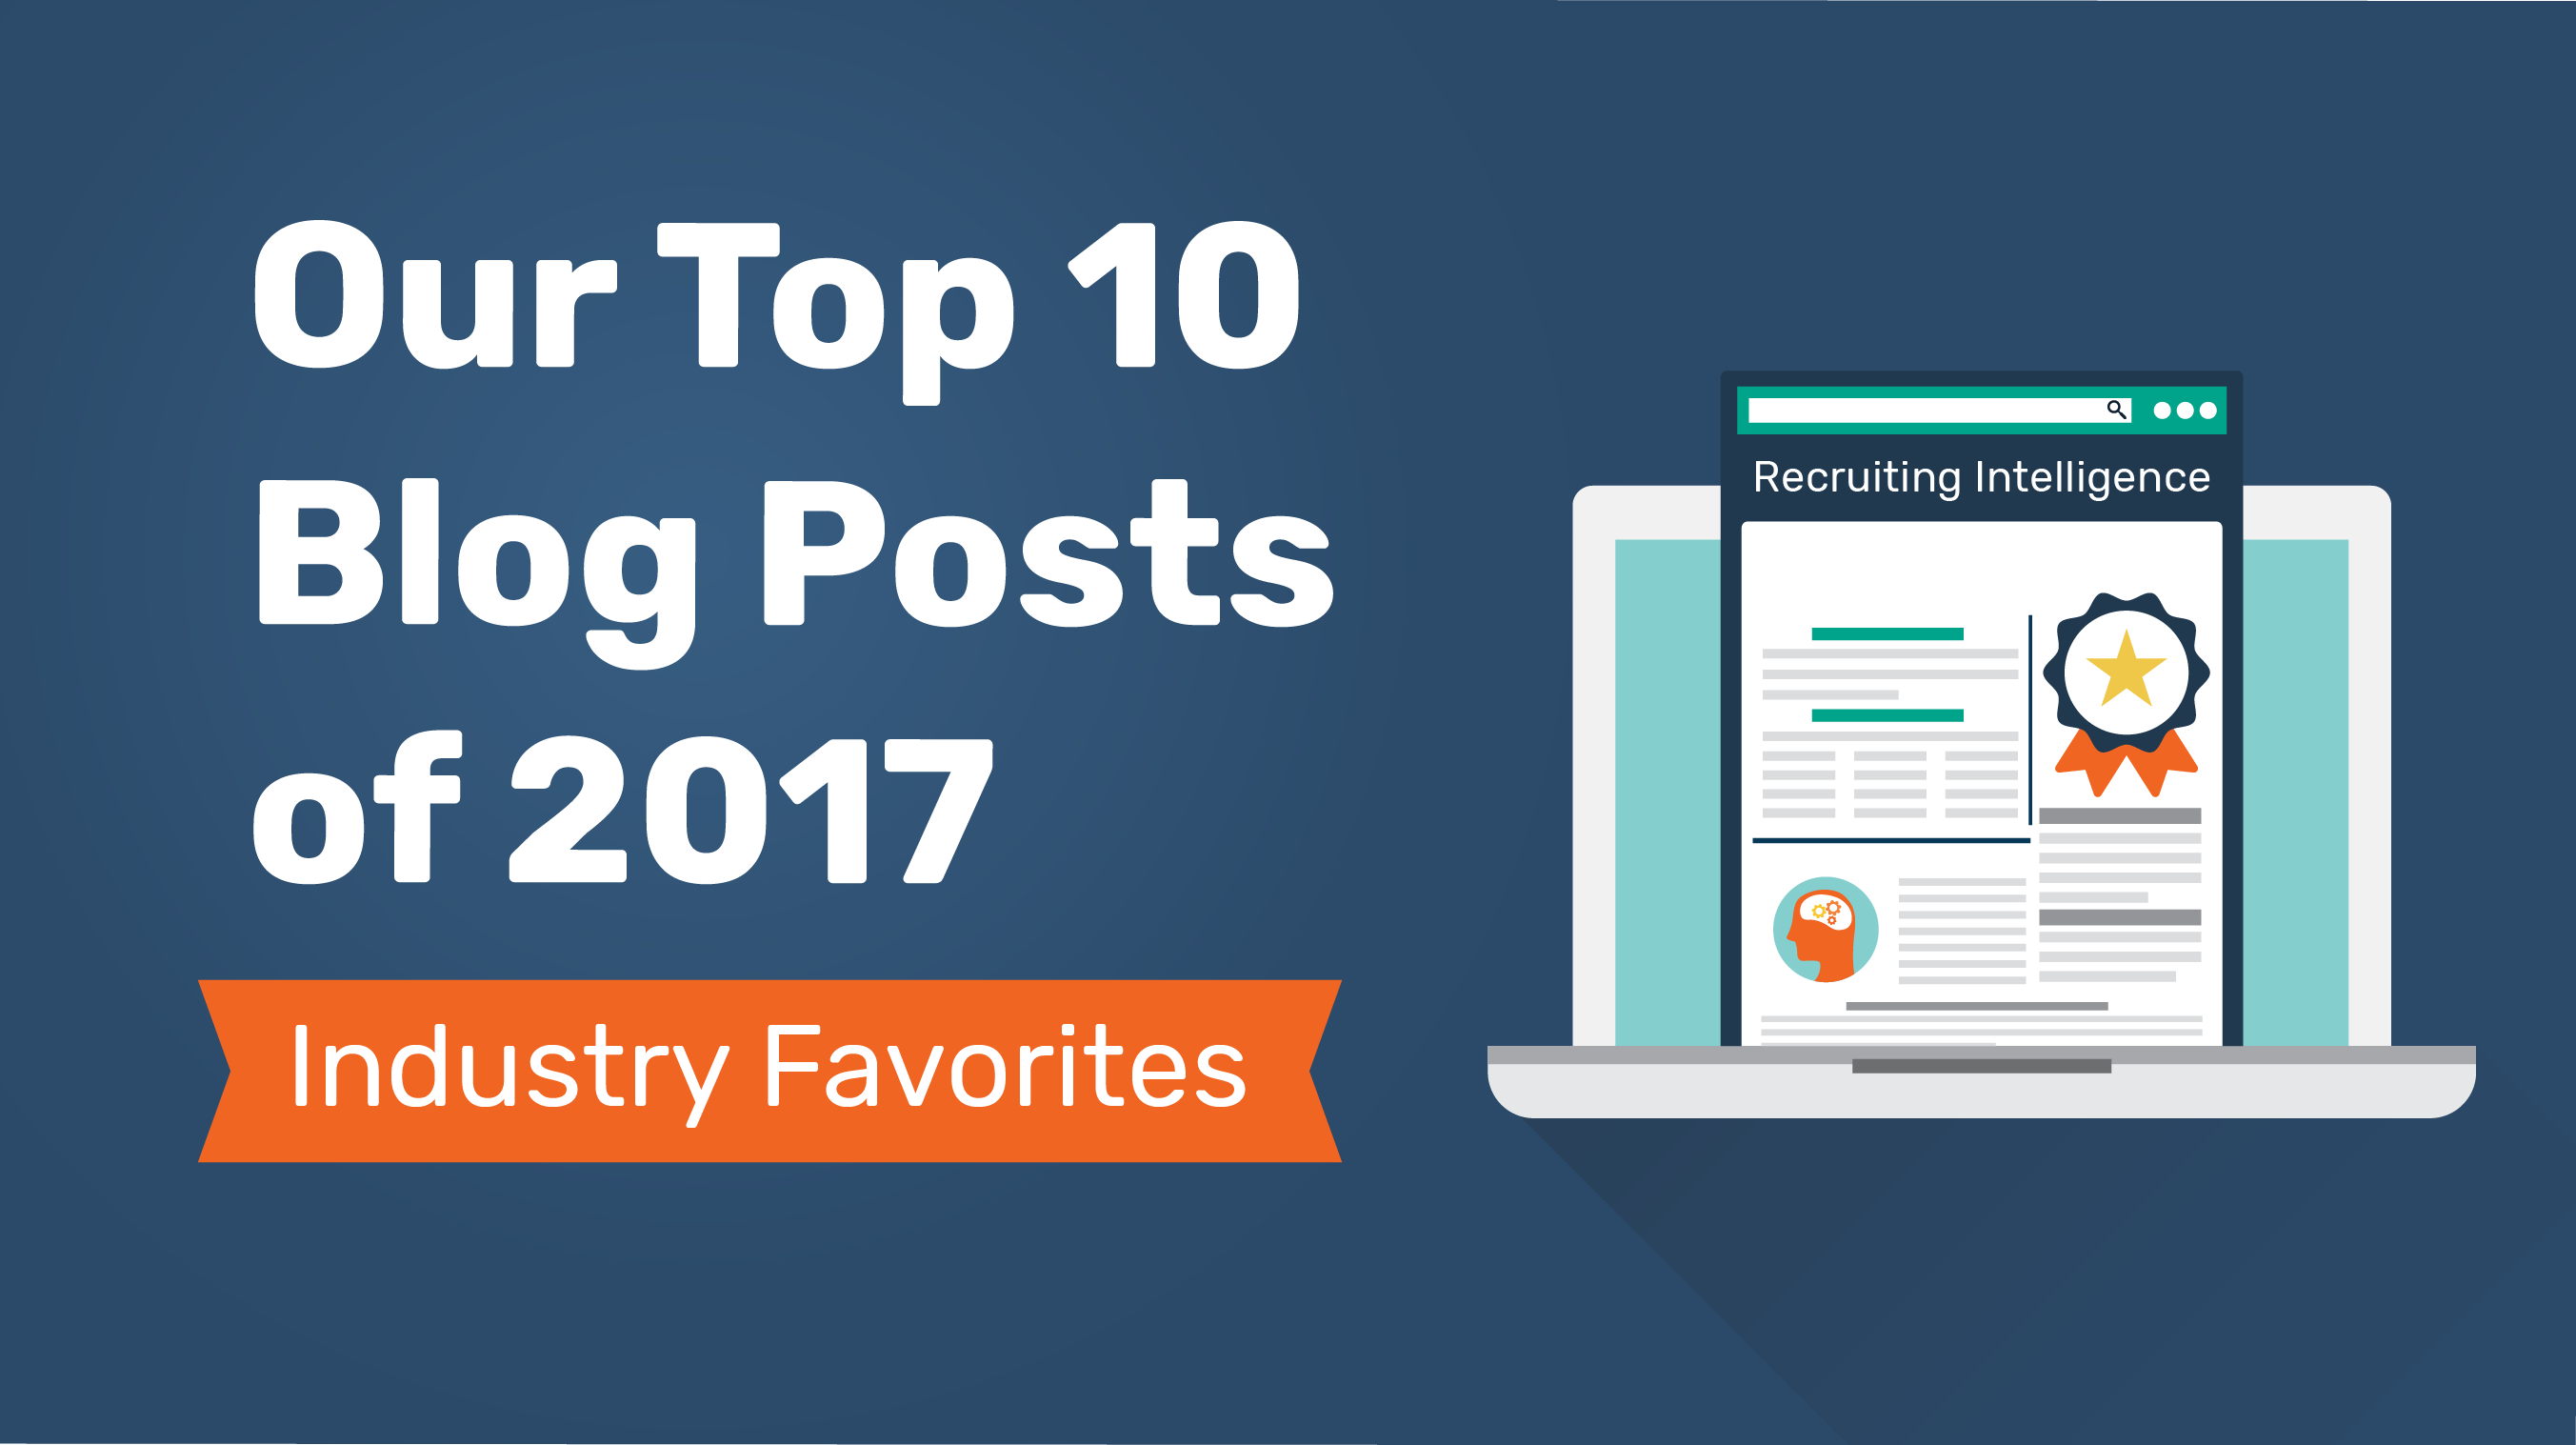 Our Top 10 Blog Posts of 2017